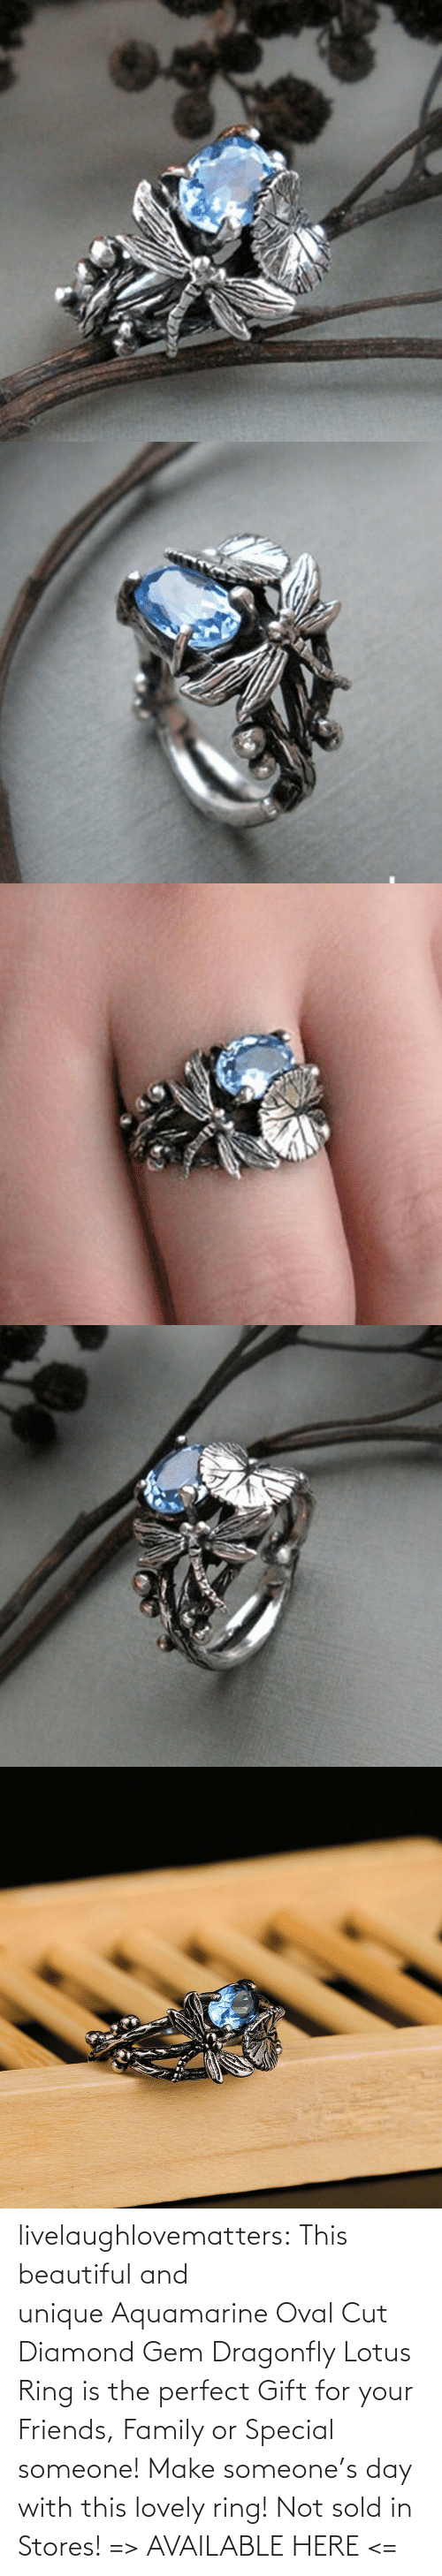 Diamond: livelaughlovematters: This beautiful and unique Aquamarine Oval Cut Diamond Gem Dragonfly Lotus Ring is the perfect Gift for your Friends, Family or Special someone! Make someone's day with this lovely ring! Not sold in Stores! => AVAILABLE HERE <=